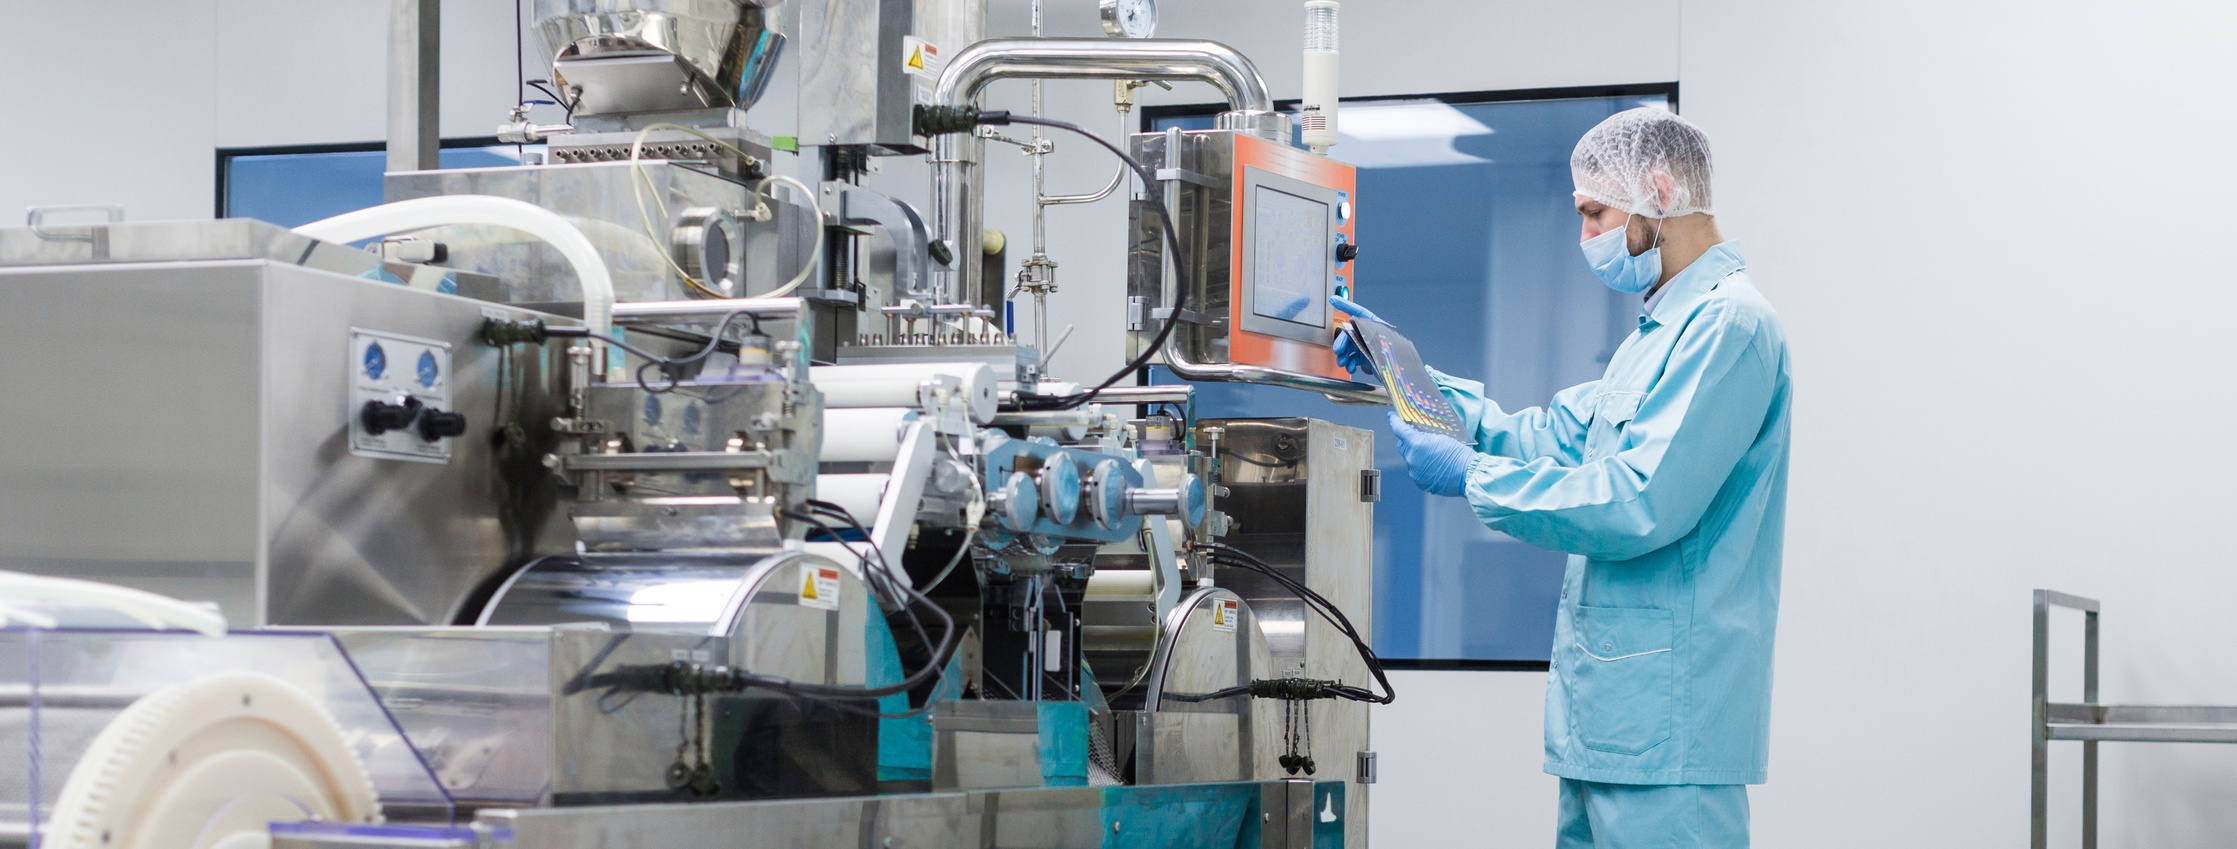 Maintaining contaminant-free conditions is a must in the food manufacturing industry.